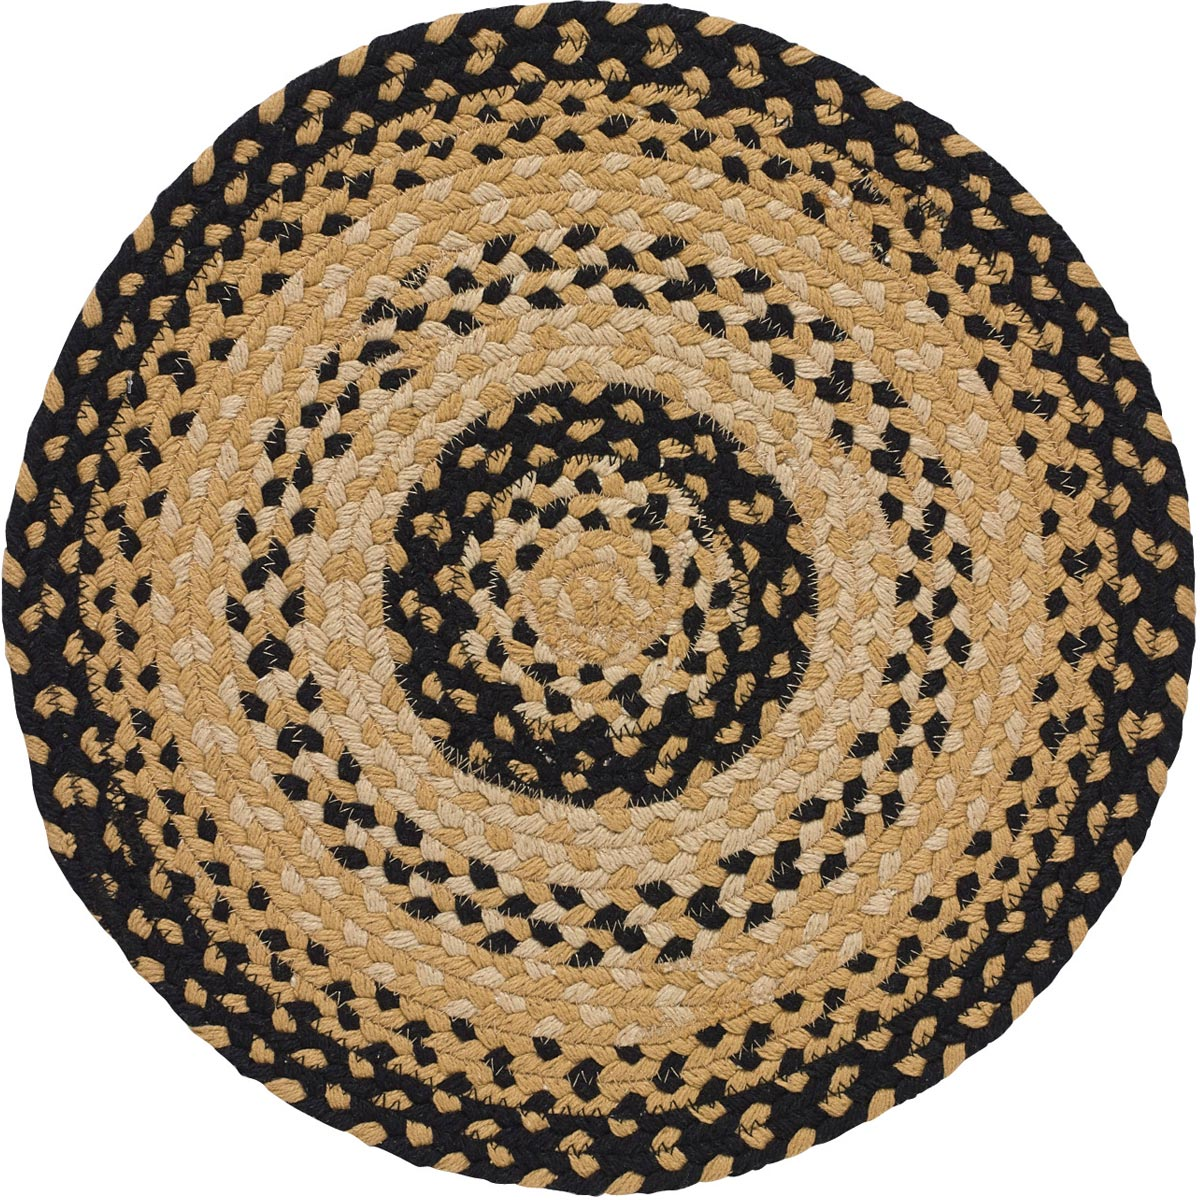 Cotton Braided Placemat by Park Designs